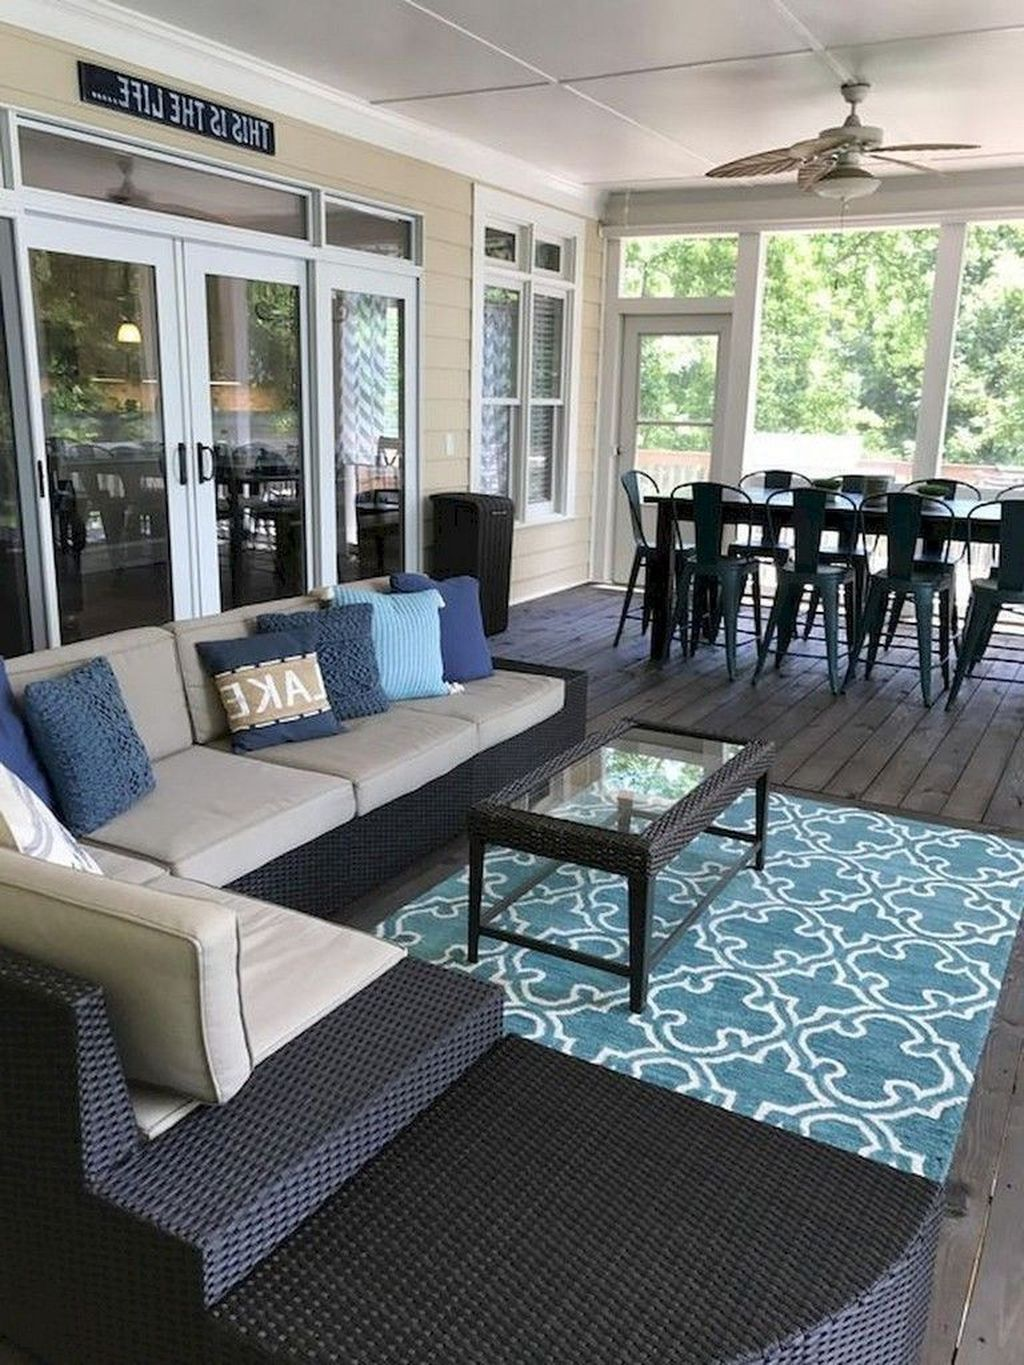 41 Incredible Front Porch Decorating Ideas For House #smallporchdecorating